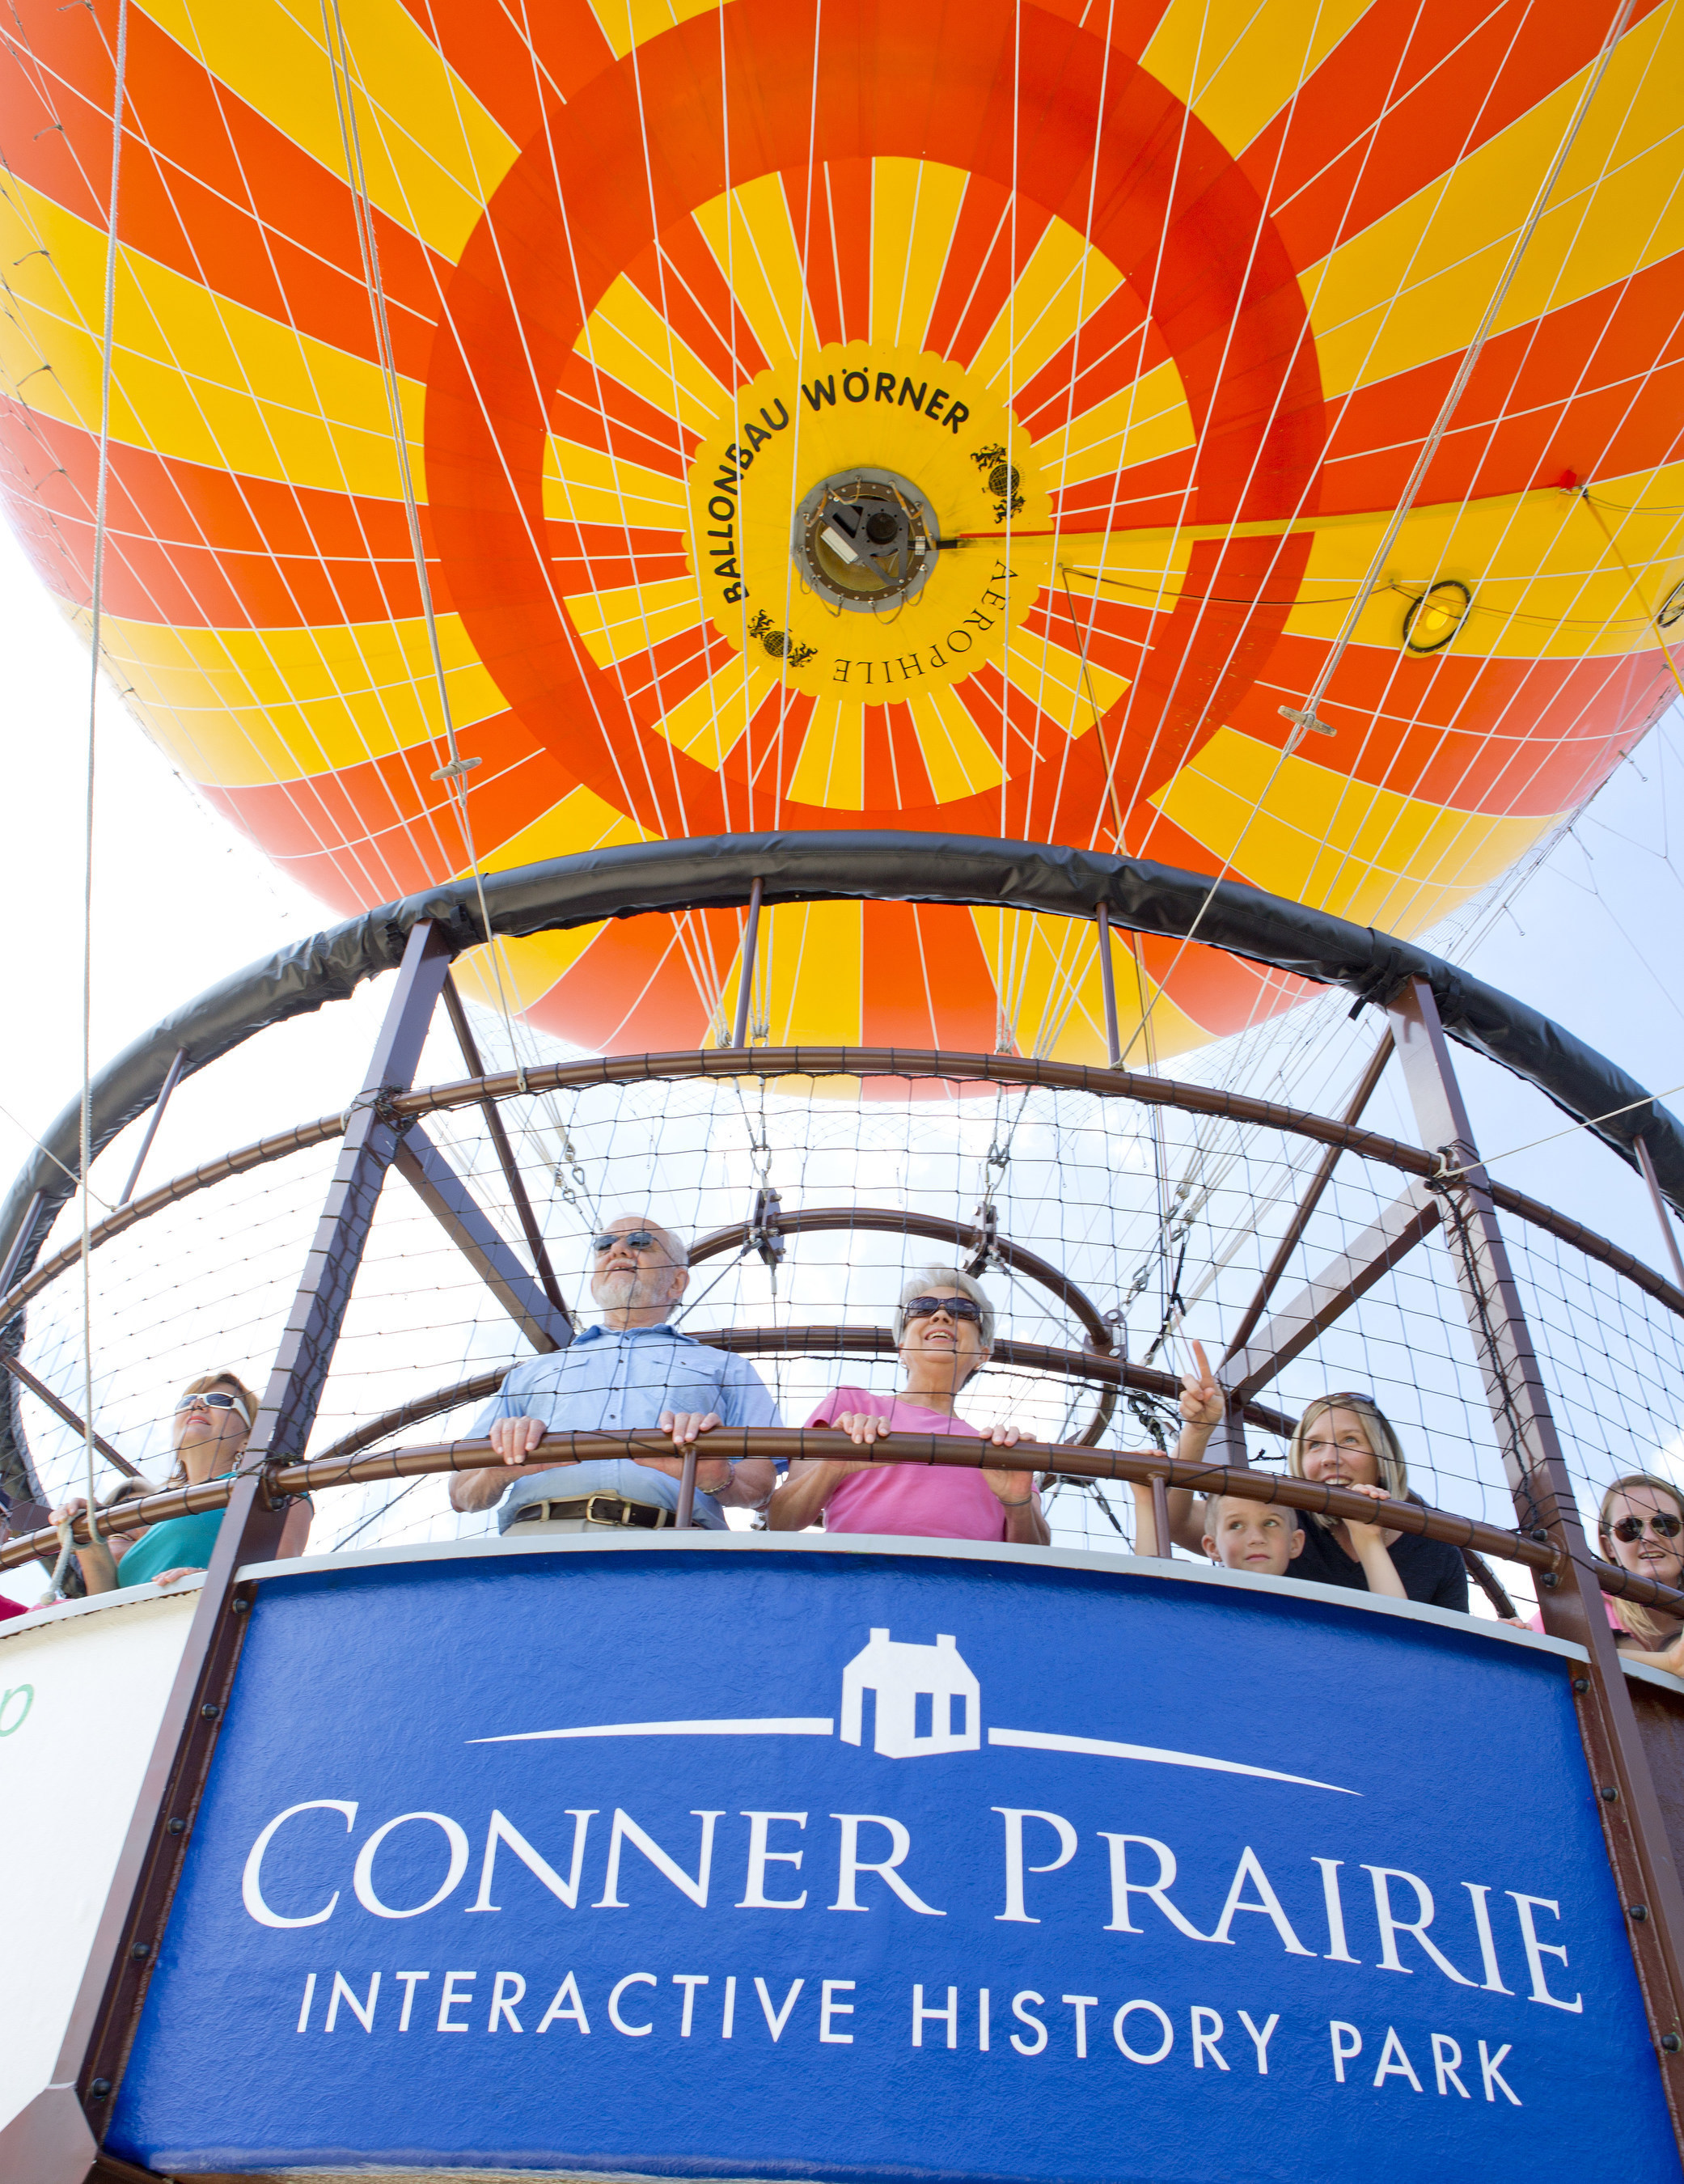 Indiana-headquartered Reynolds Farm Equipment is the new presenting sponsor of the 1859 Balloon Voyage experience at Conner Prairie, an interactive history park north of Indianapolis that draws 360,000 visitors annually. The company will provide $375,000 to sponsor the balloon and its new outdoor exhibit space through 2019.